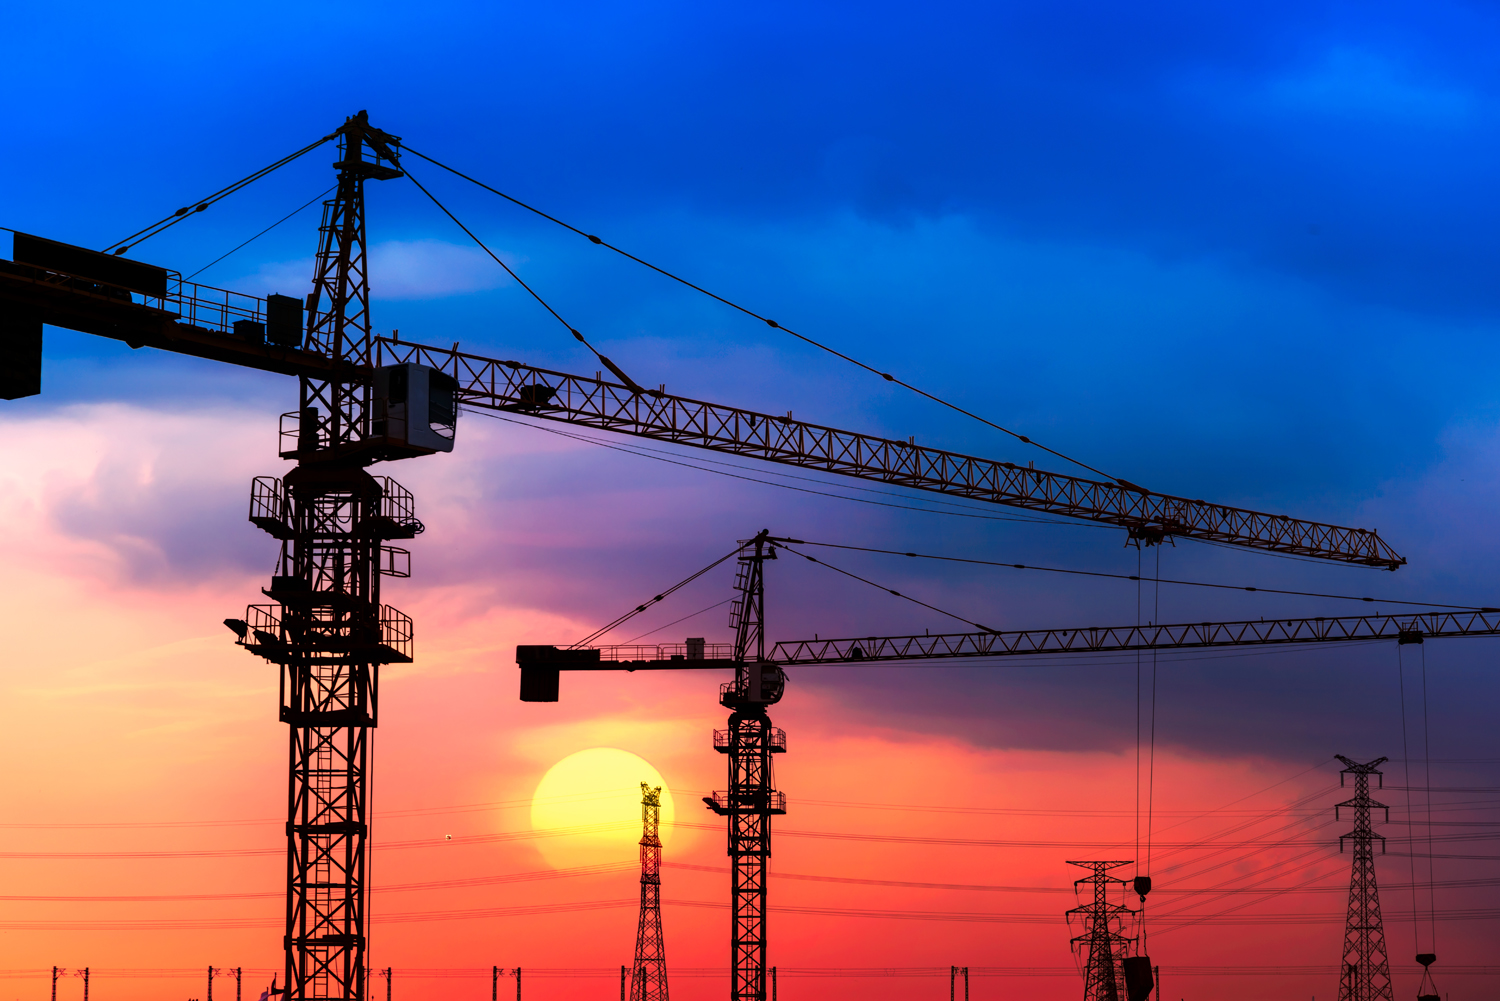 Industrial construction cranes and building silhouettes over sun